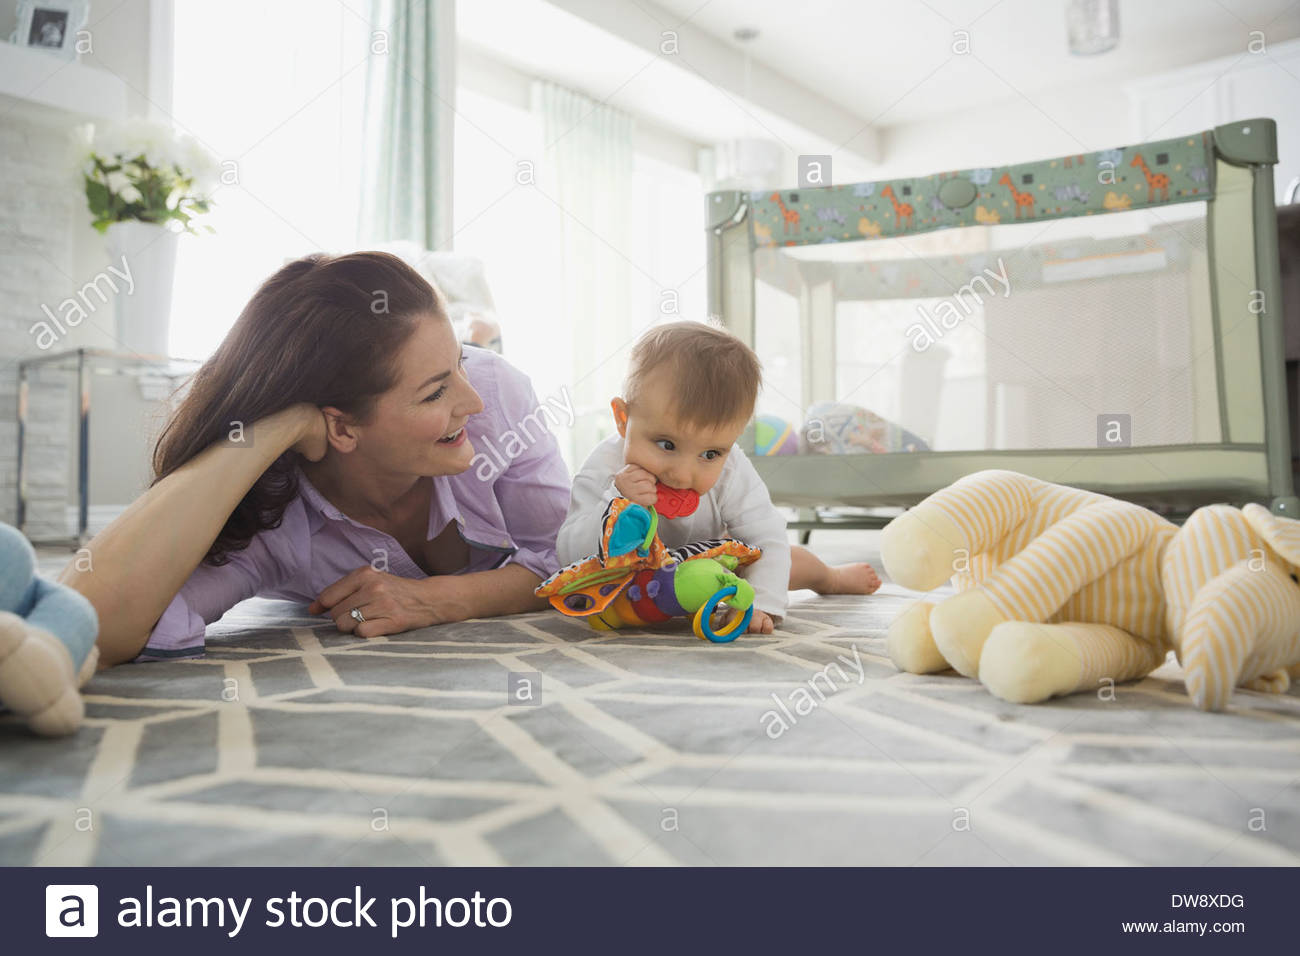 Mother and baby girl playing with toys on floor Stock Photo